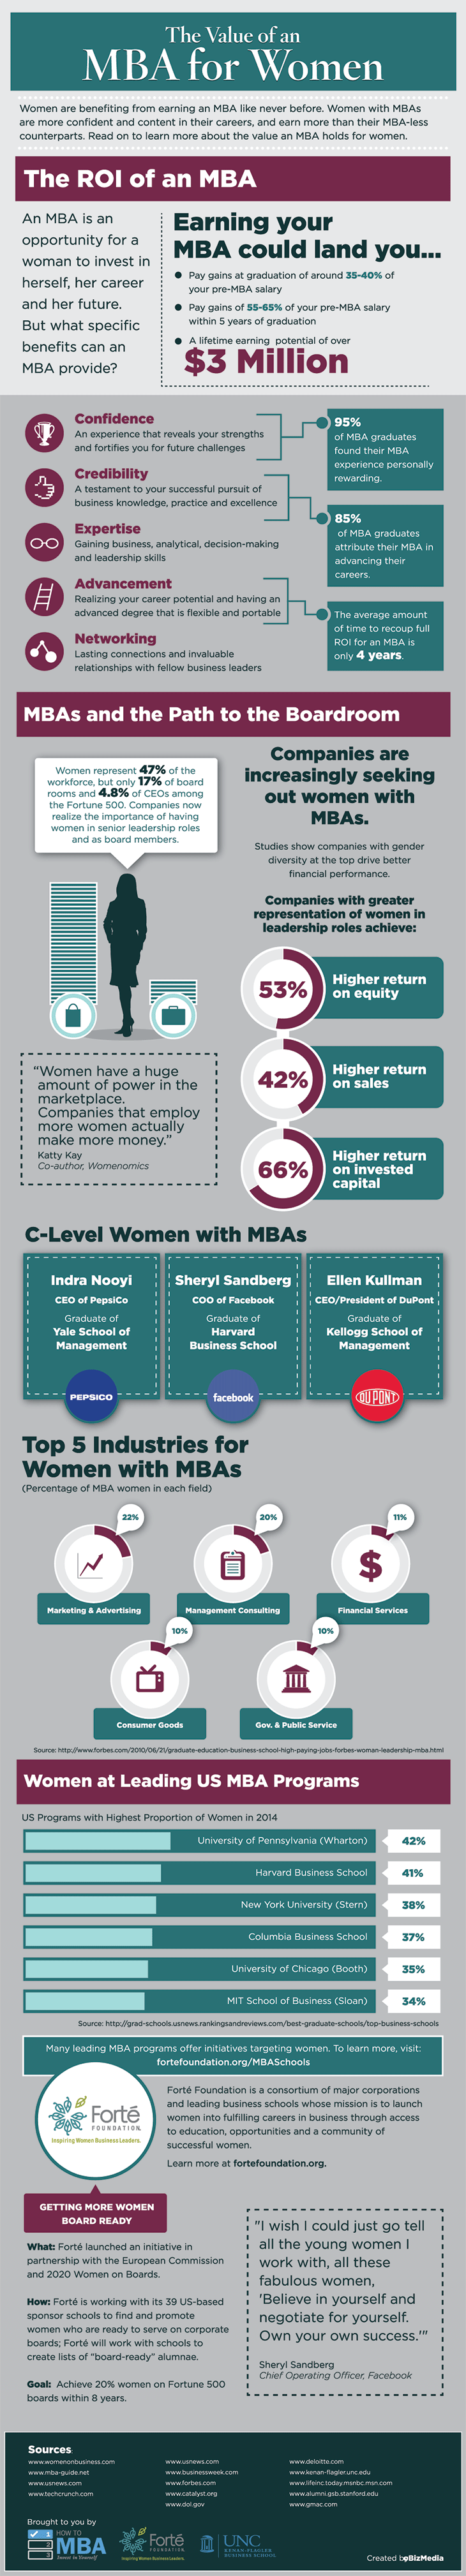 The Value of an MBA for Women